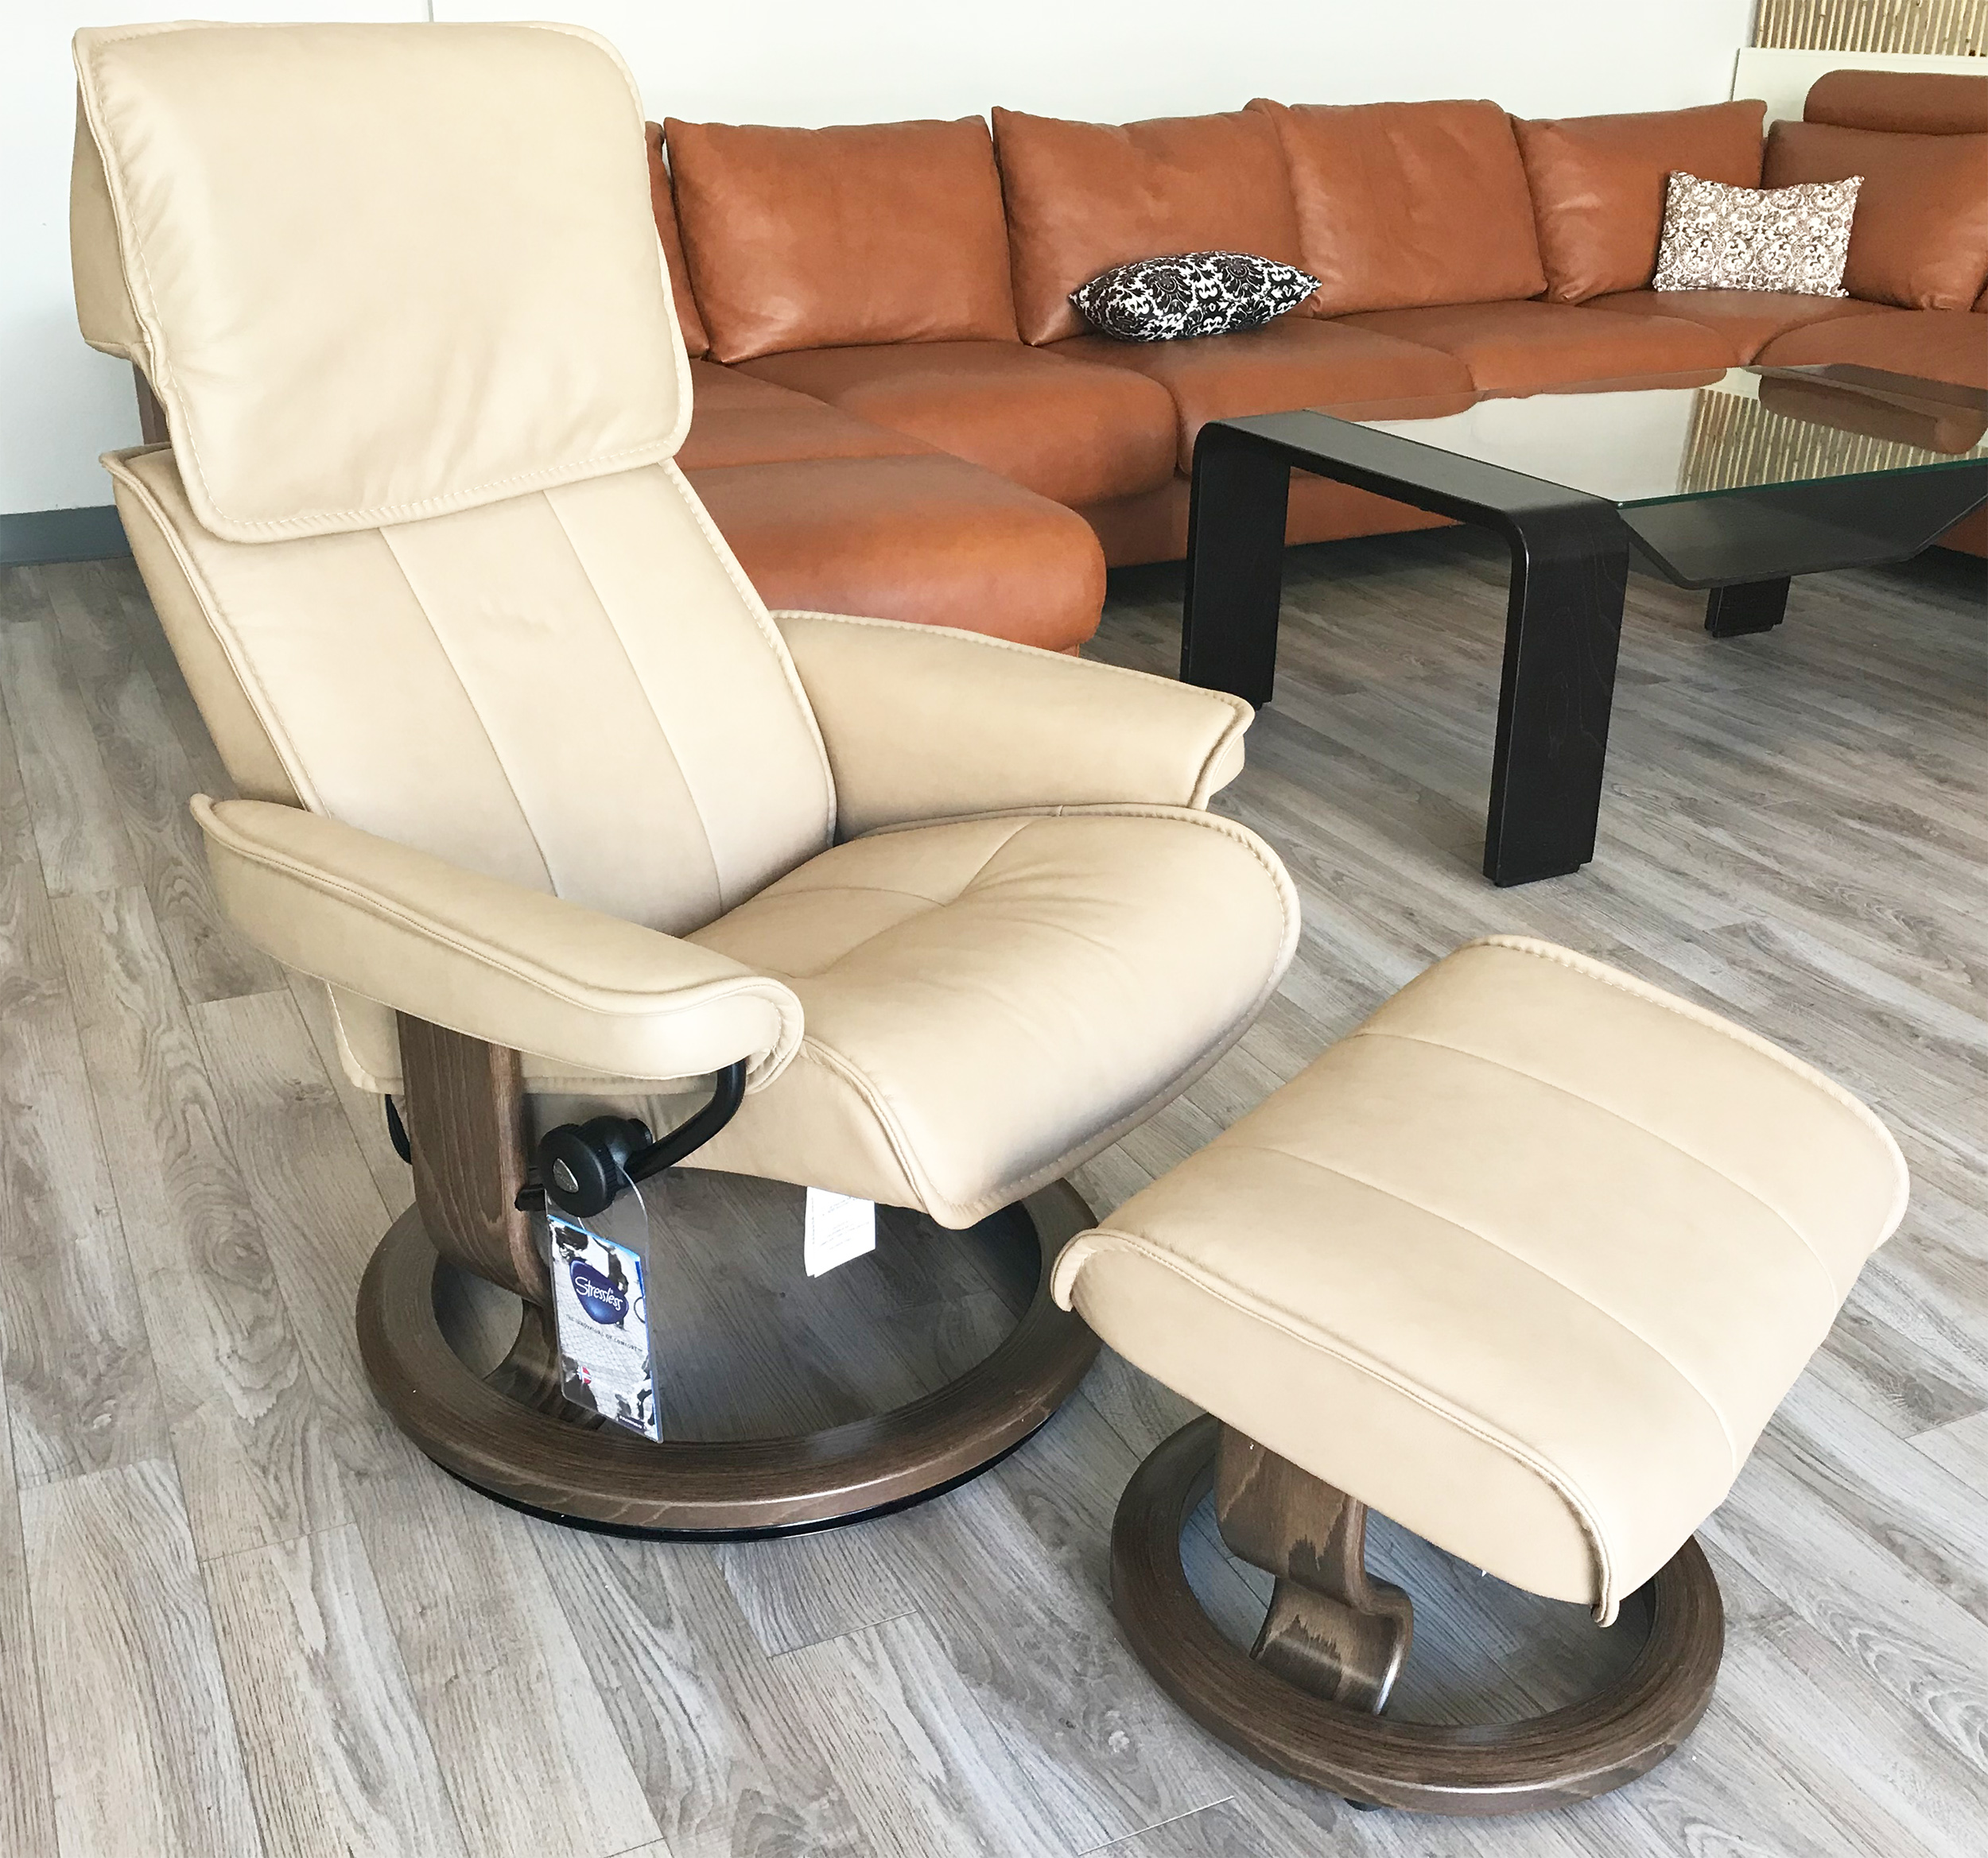 Stresless Stressless Admiral Paloma Sand Leather Recliner Chair And Ottoman By Ekornes